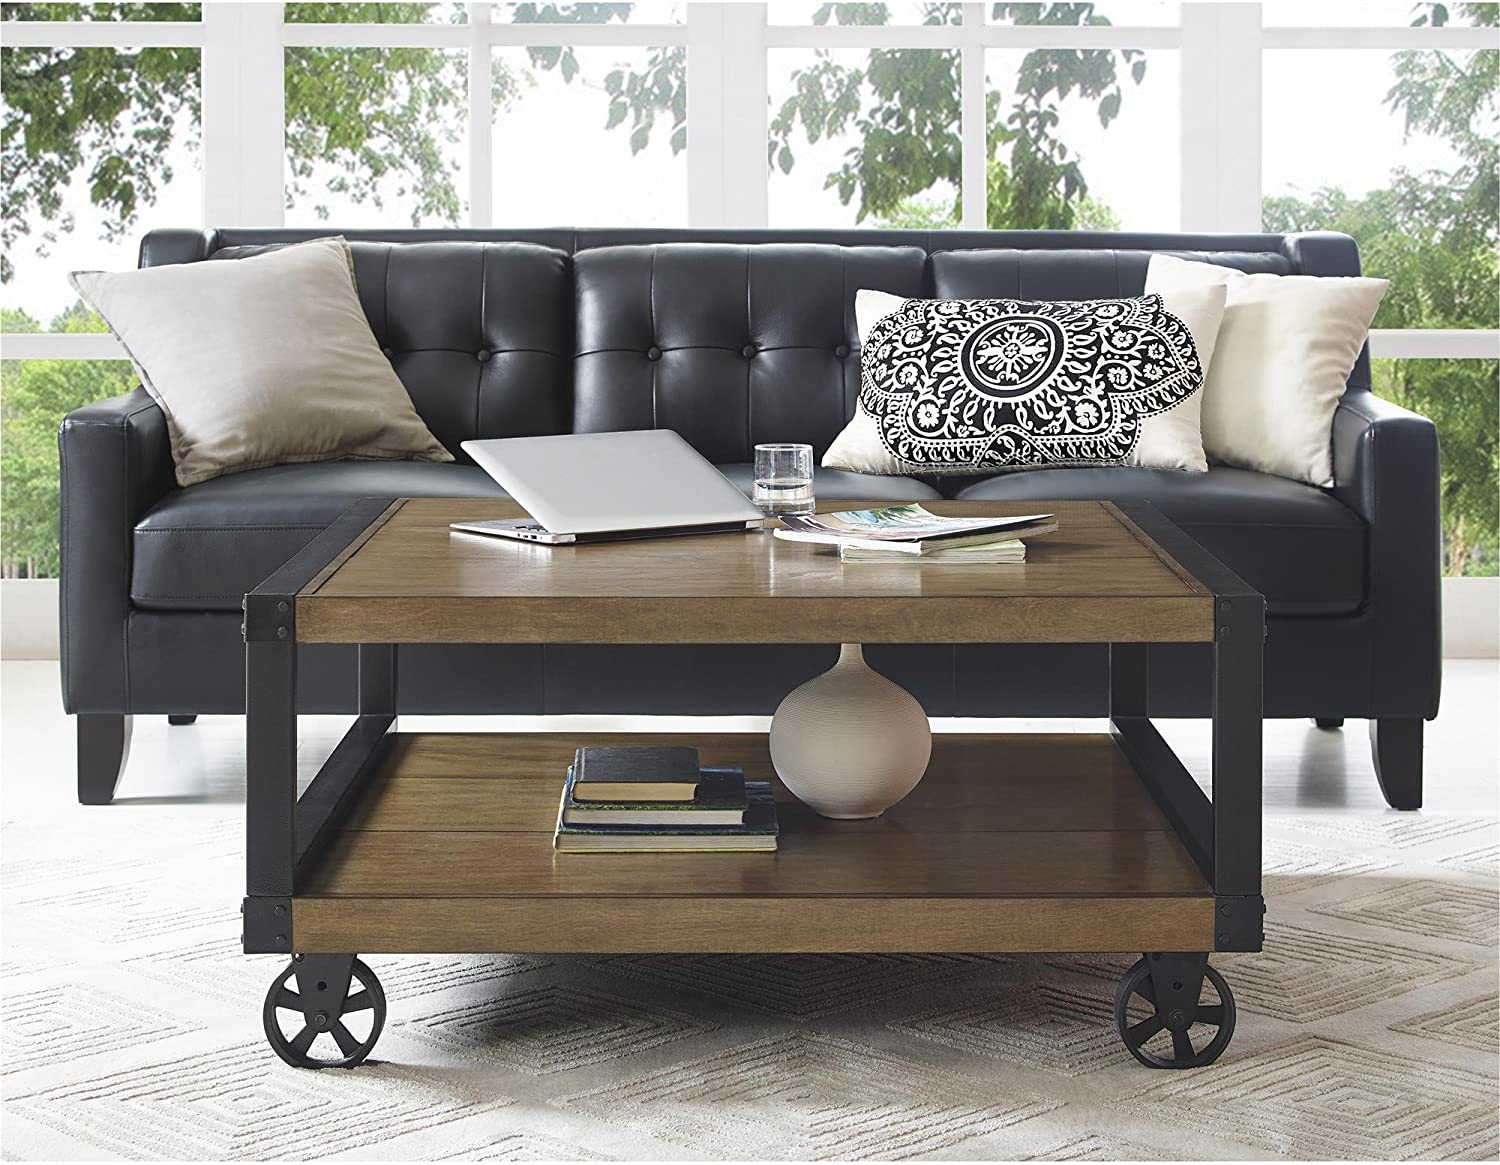 Novogratz Southampton Wood Veneer Coffee Table Rustic Gray Furniture Decor